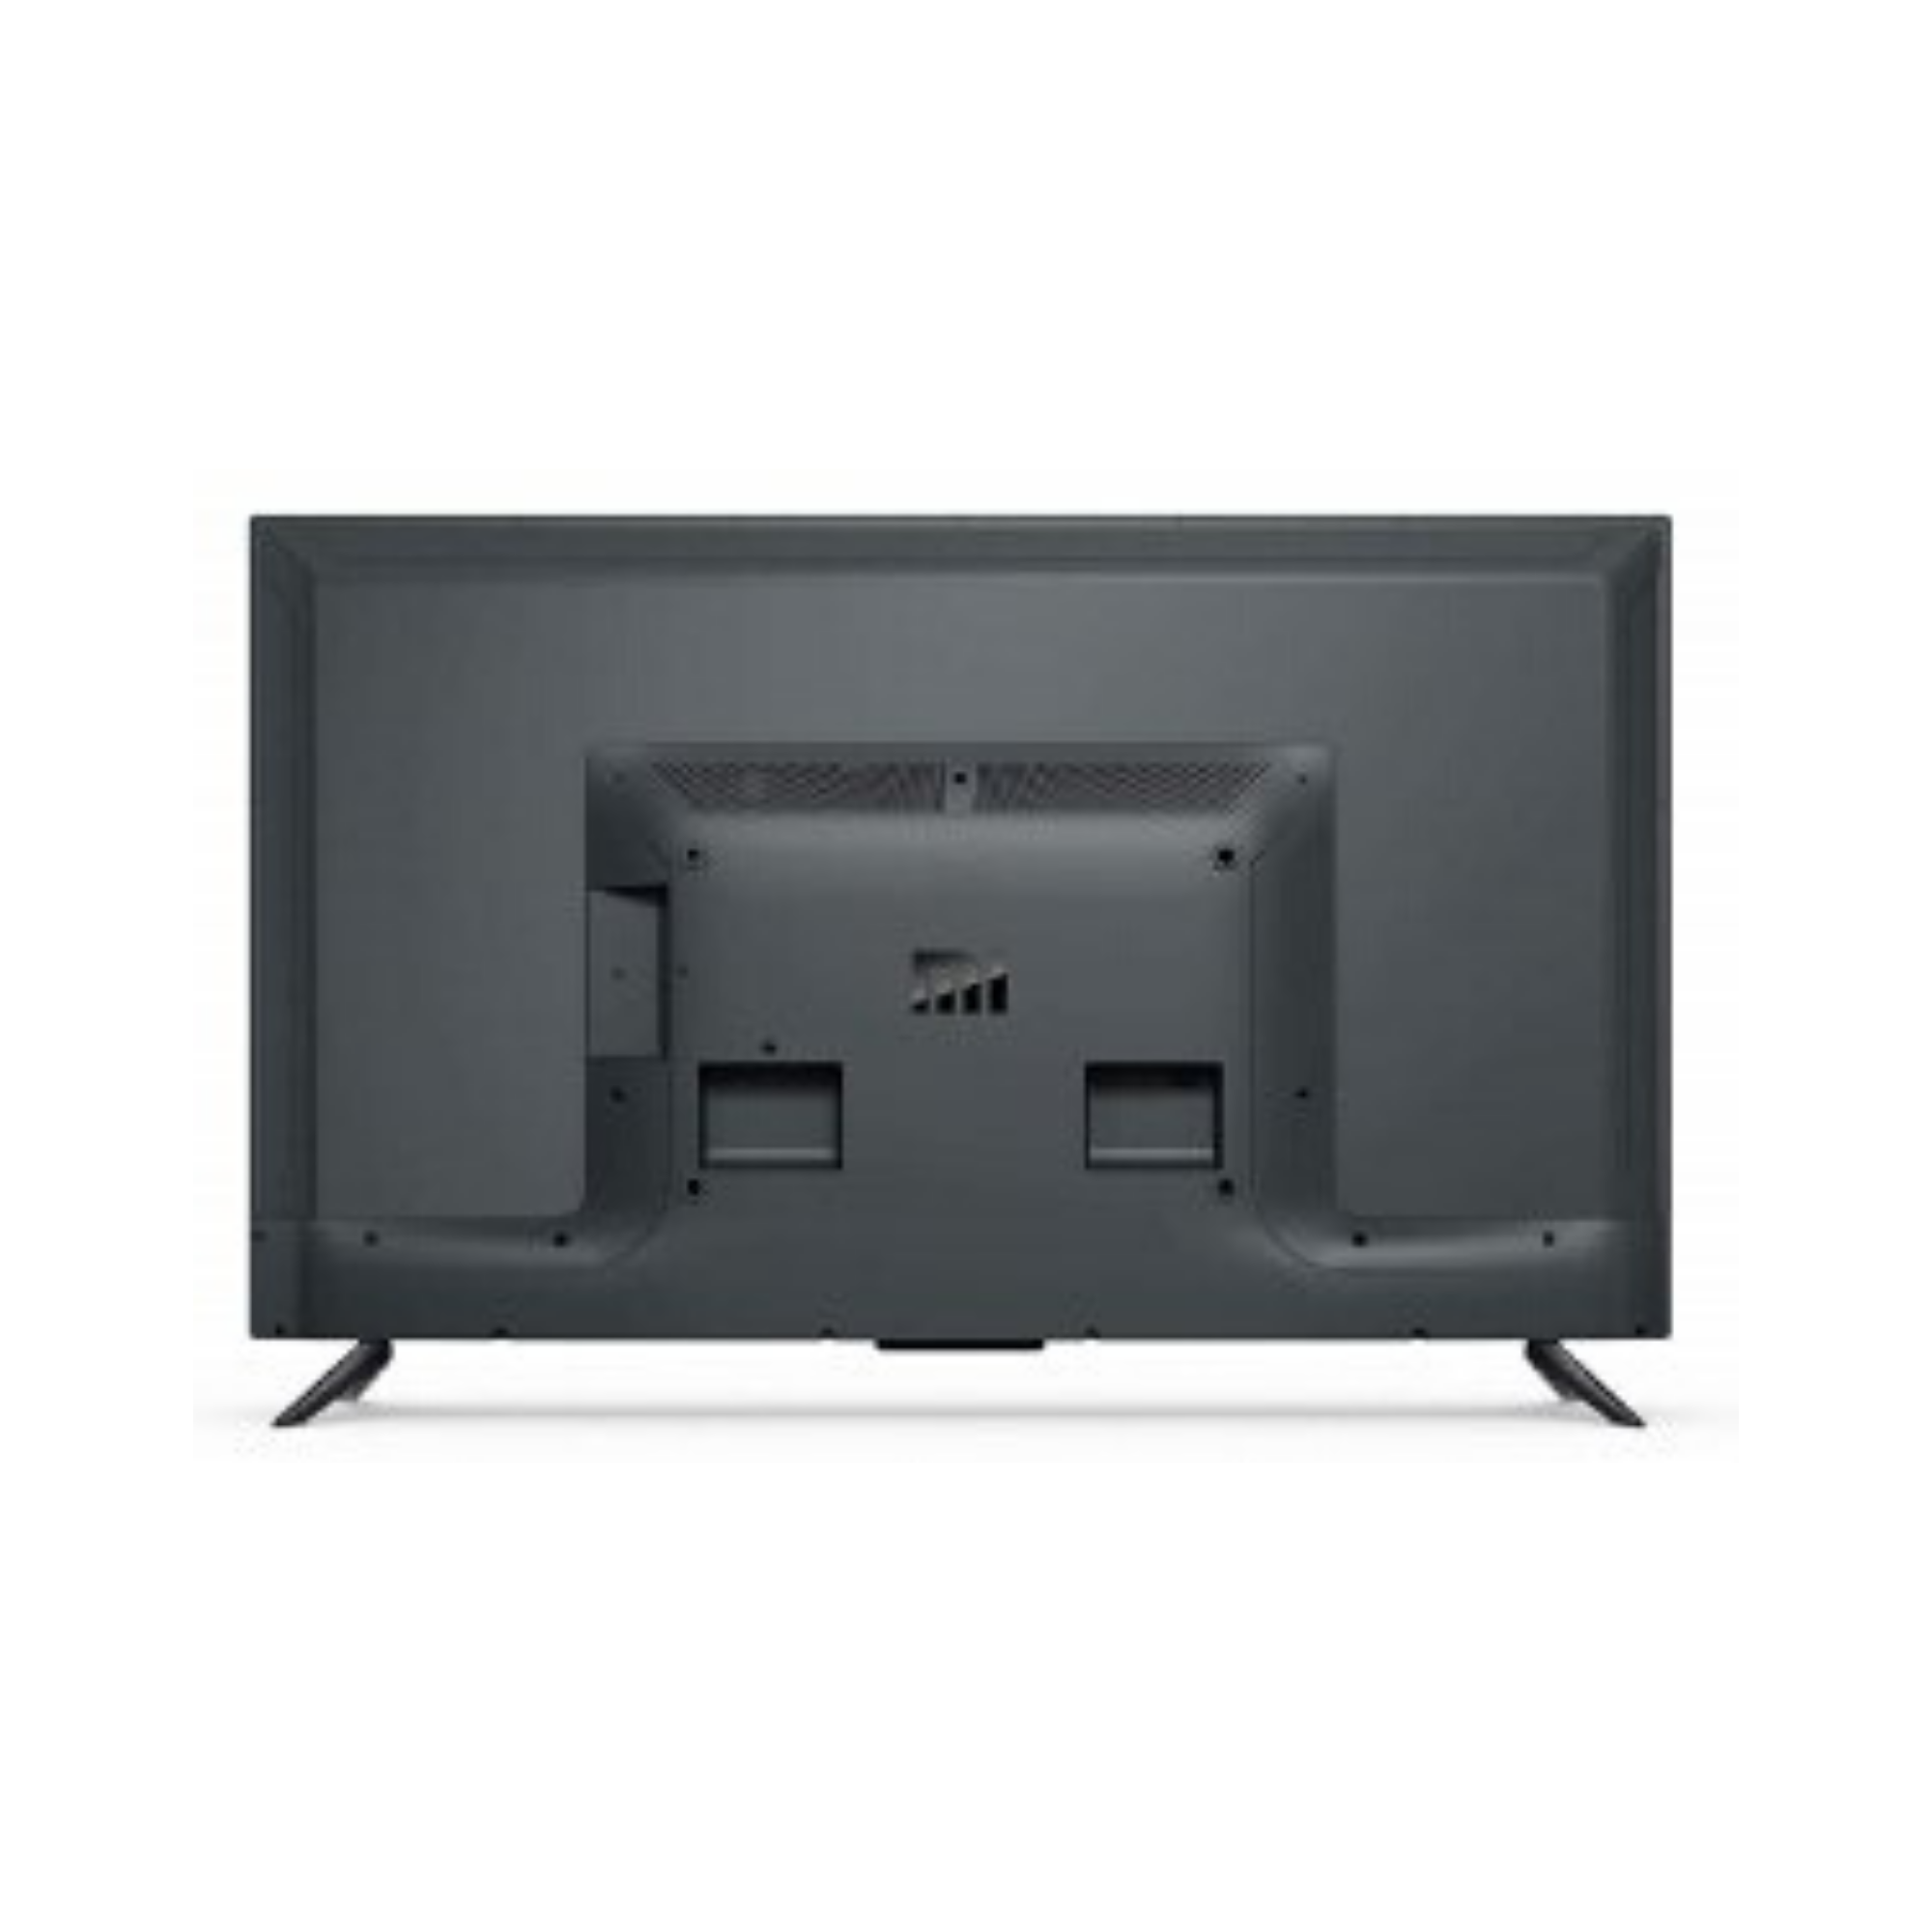 Mi LED Smart TV 4A PRO 80 cm (32) with Androi